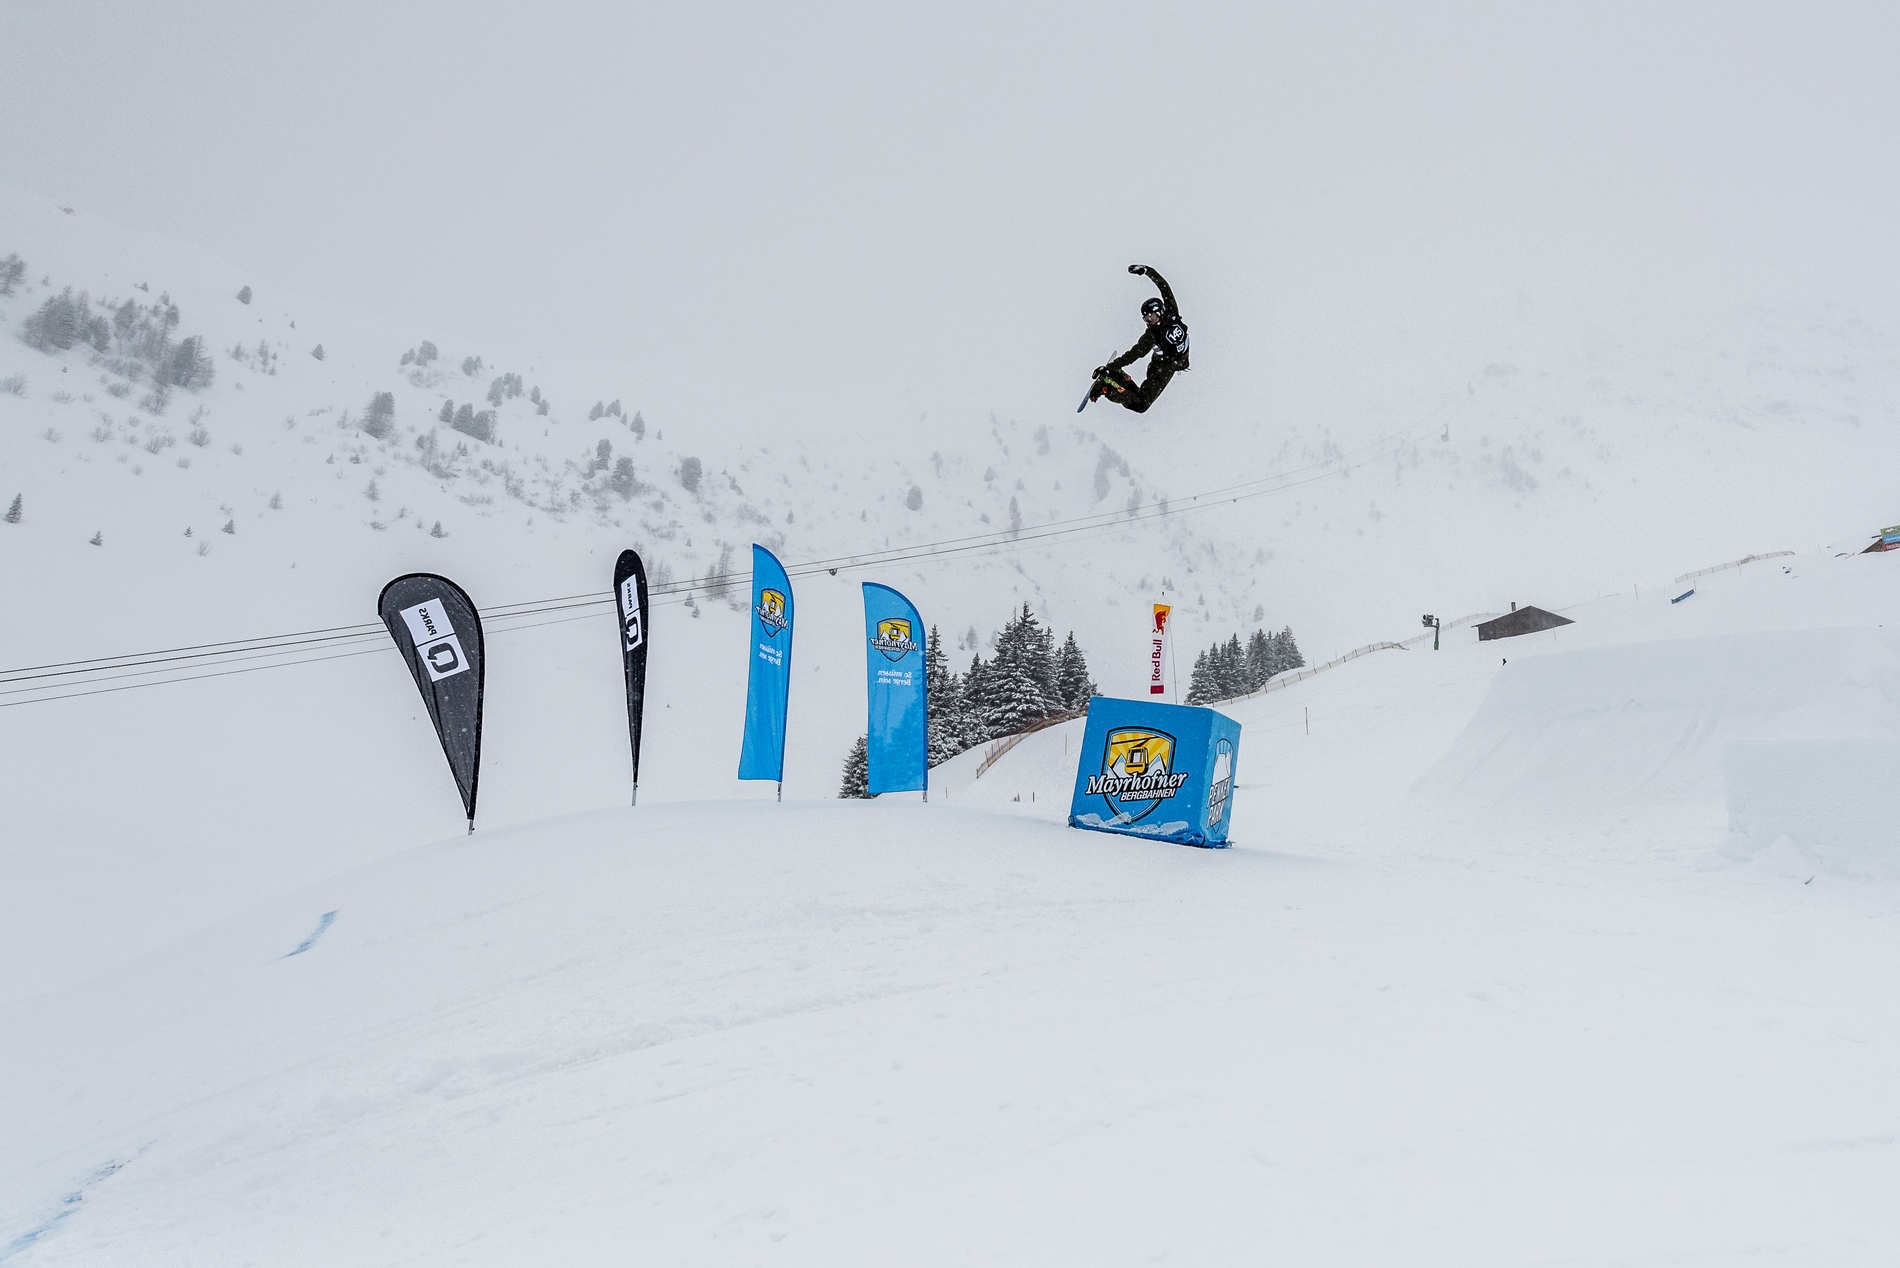 web mayrhofen 03 02 2018 action sb moritz kaufmann christian riefenberg qparks 1